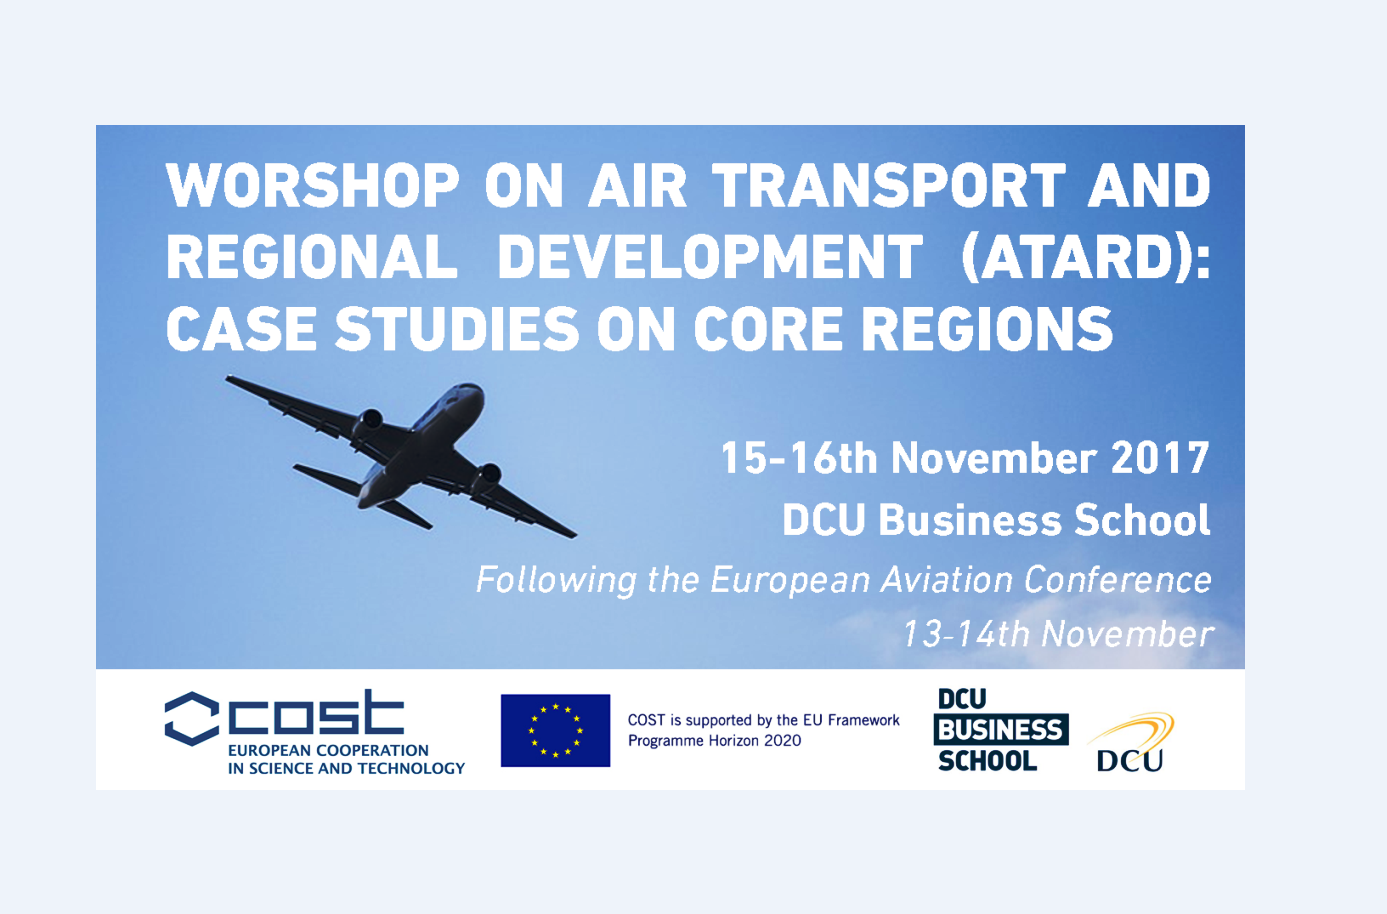 Workshop on Air Transport and Regional Development (ATARD):  Case Studies on Core Regions